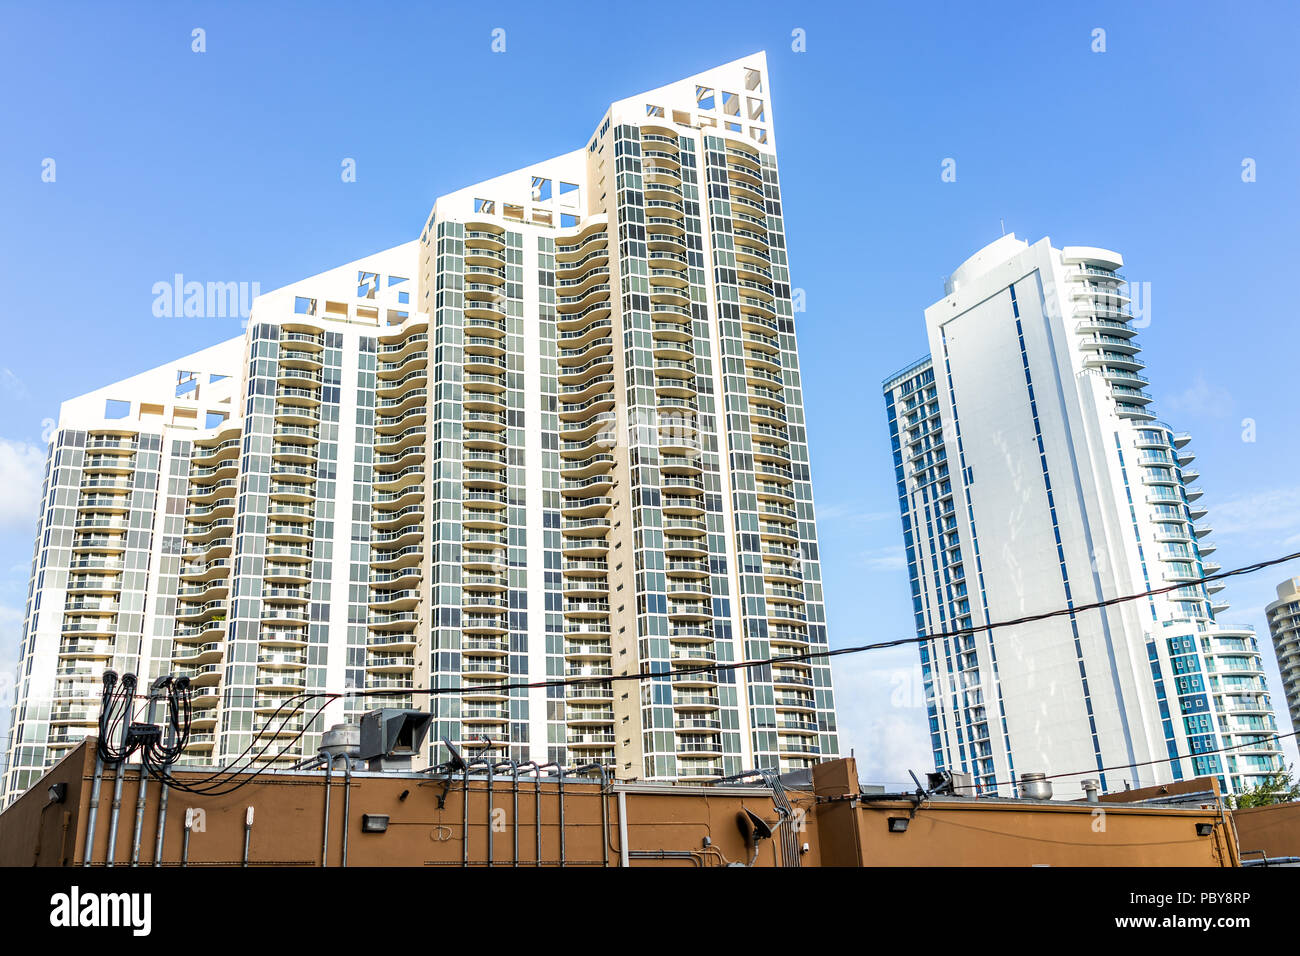 Sunny Isles Beach, USA - May 4, 2018: Apartment condo hotel Pinnacle building balconies during sunny day in Miami, Florida with skyscrapers urban back - Stock Image